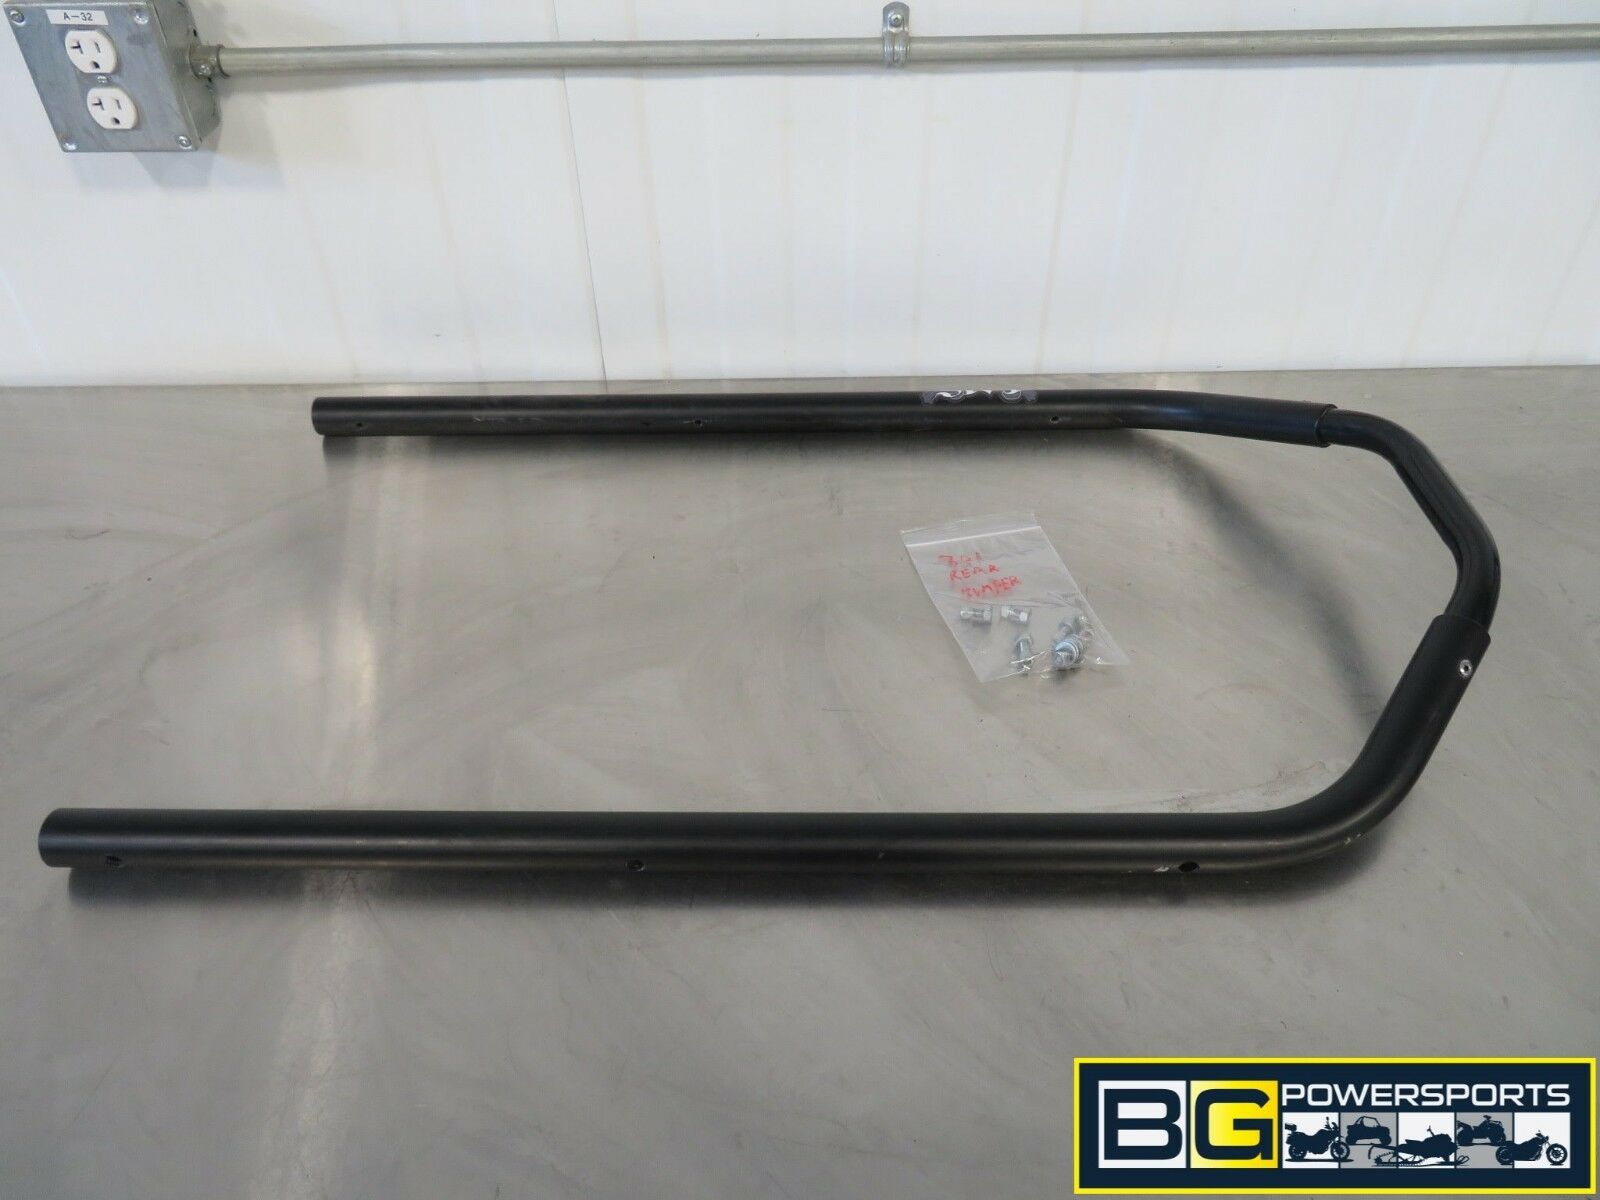 EB301 2015 15 POLARIS RMK 800 163 REAR BUMPER